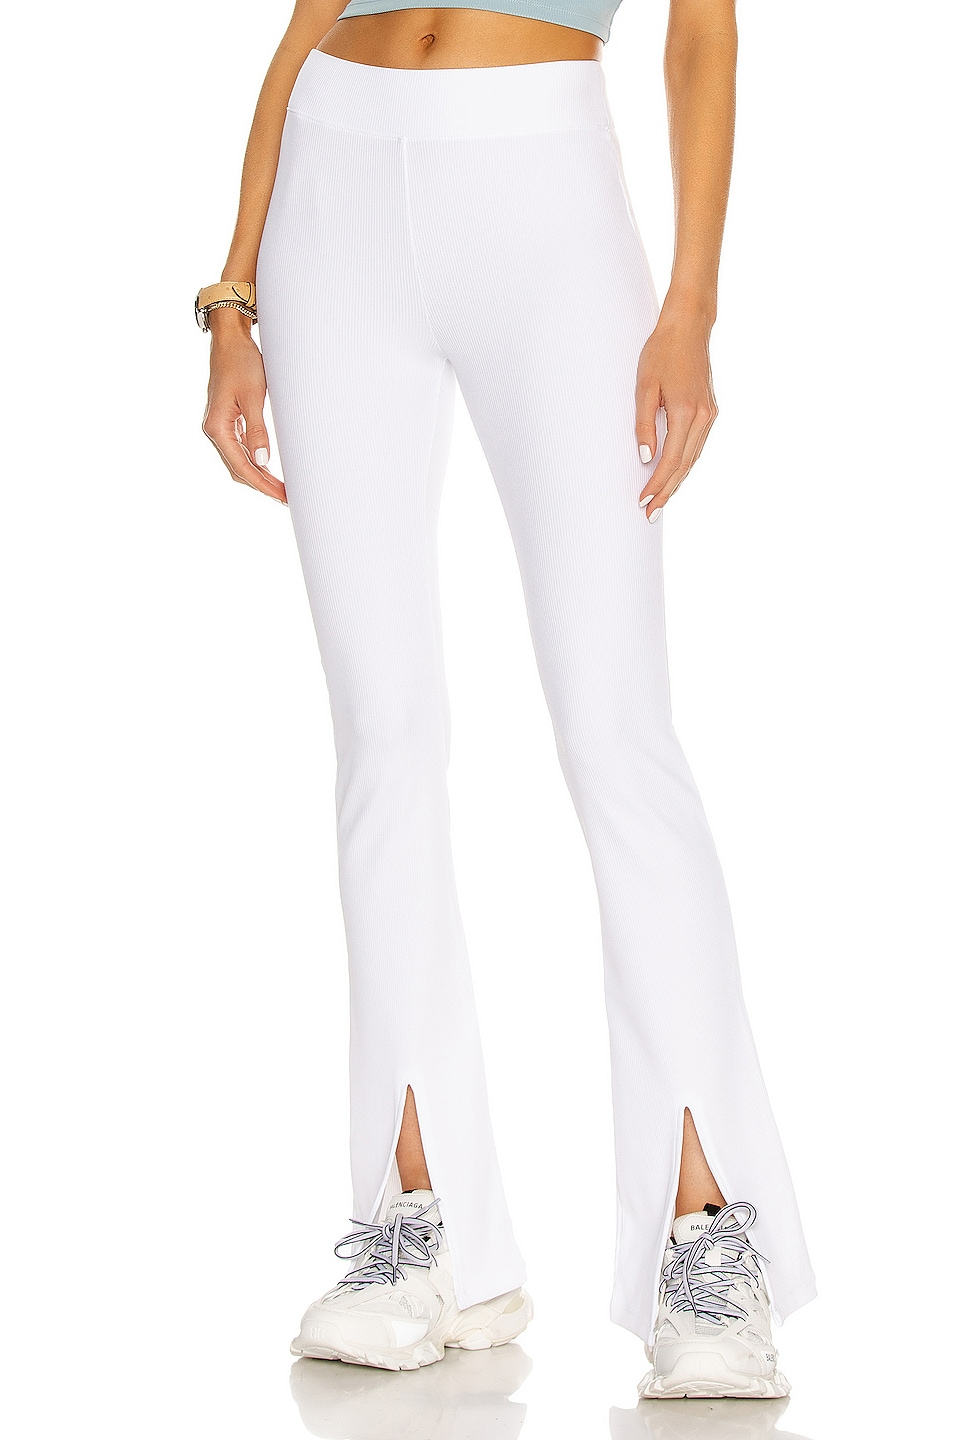 Image 1 of Nylora for FWRD Damien Pant in White